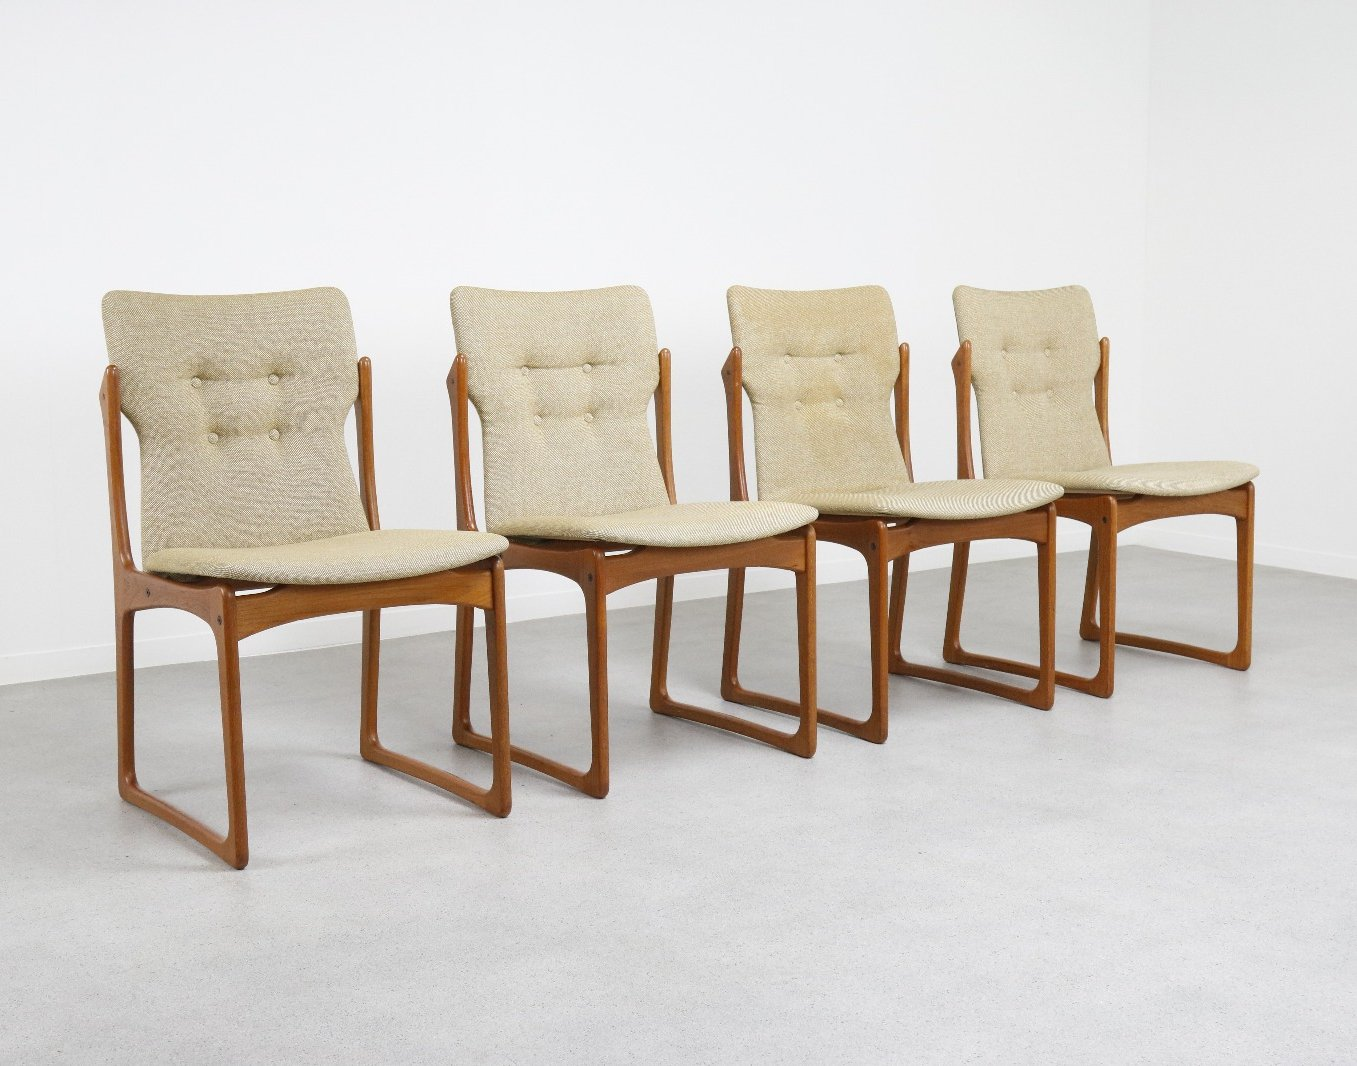 Terrific Set Of 4 Sculptural Danish Dining Chairs In Teak By Vamdrup Stolefabrik 1960S Beatyapartments Chair Design Images Beatyapartmentscom